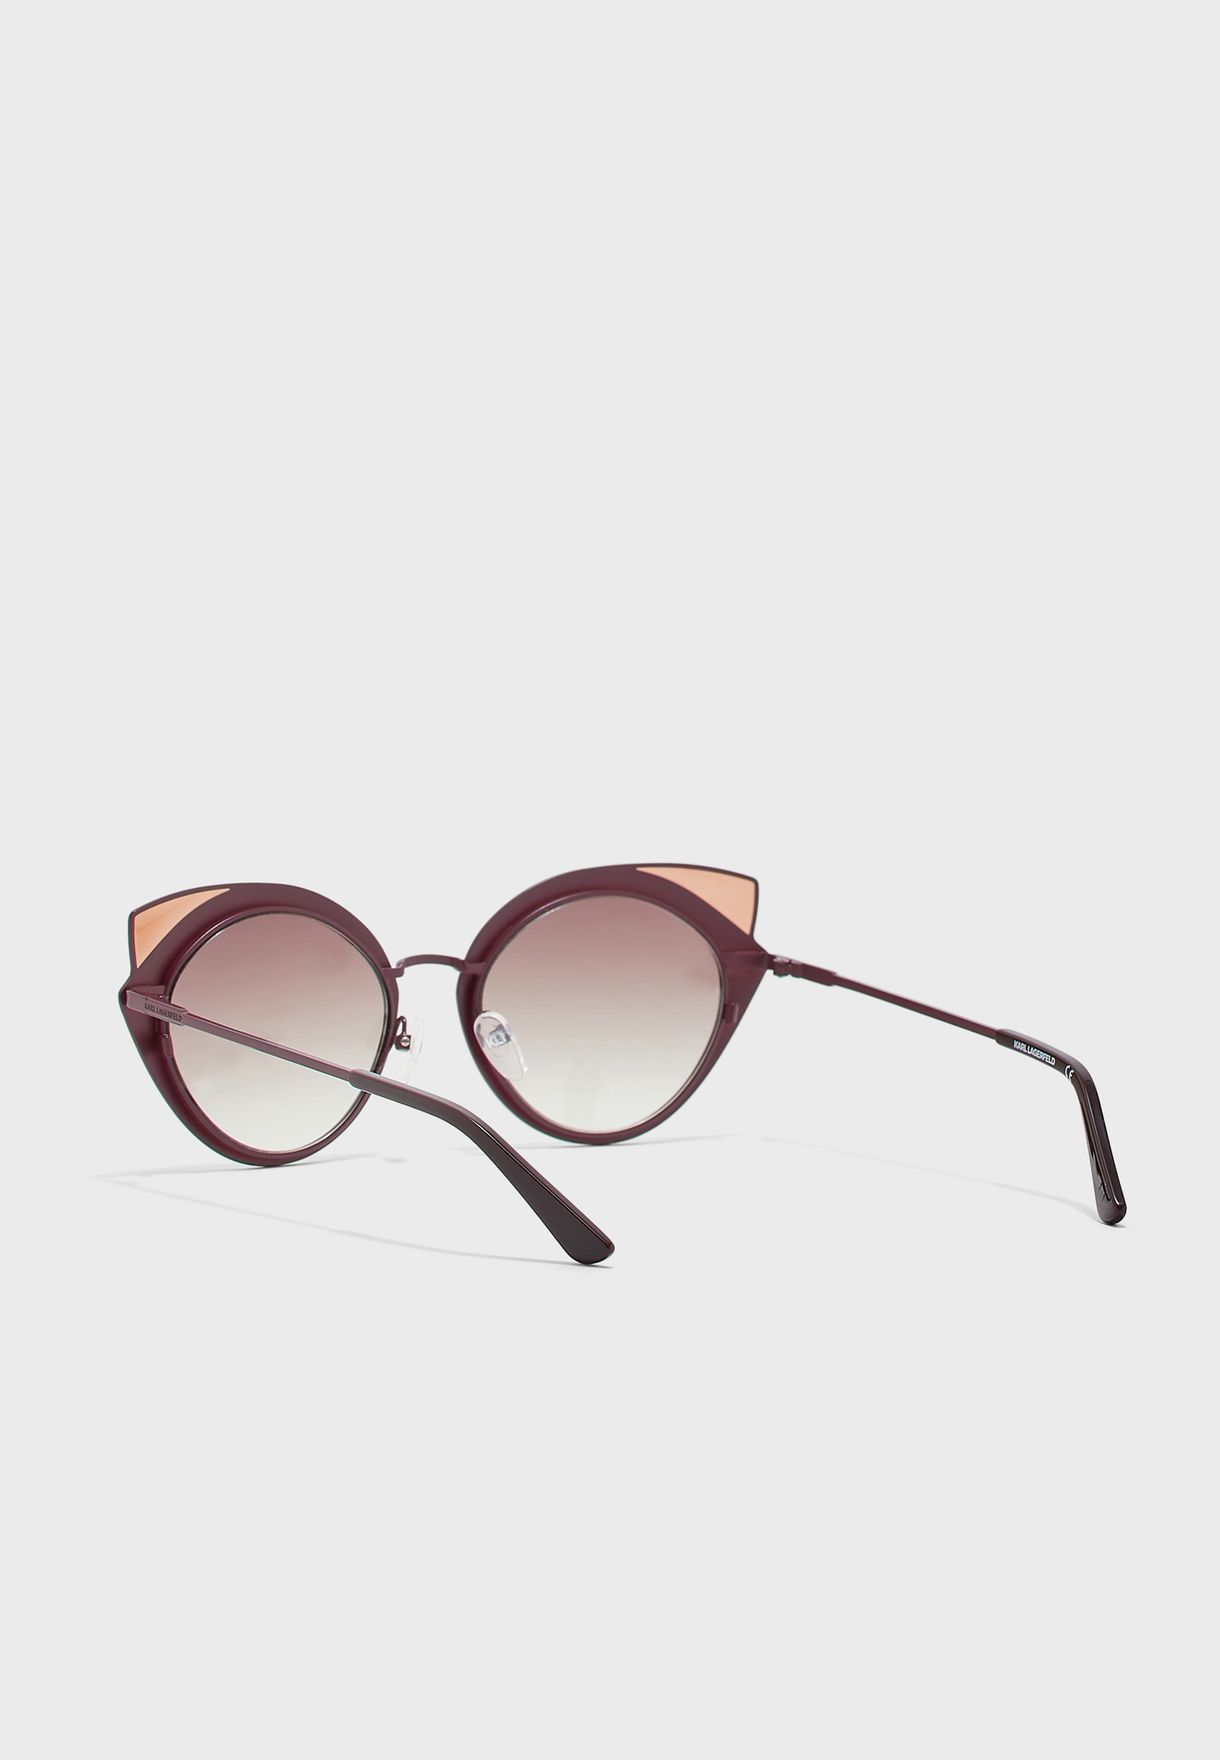 KL304S Oversized Sunglasses